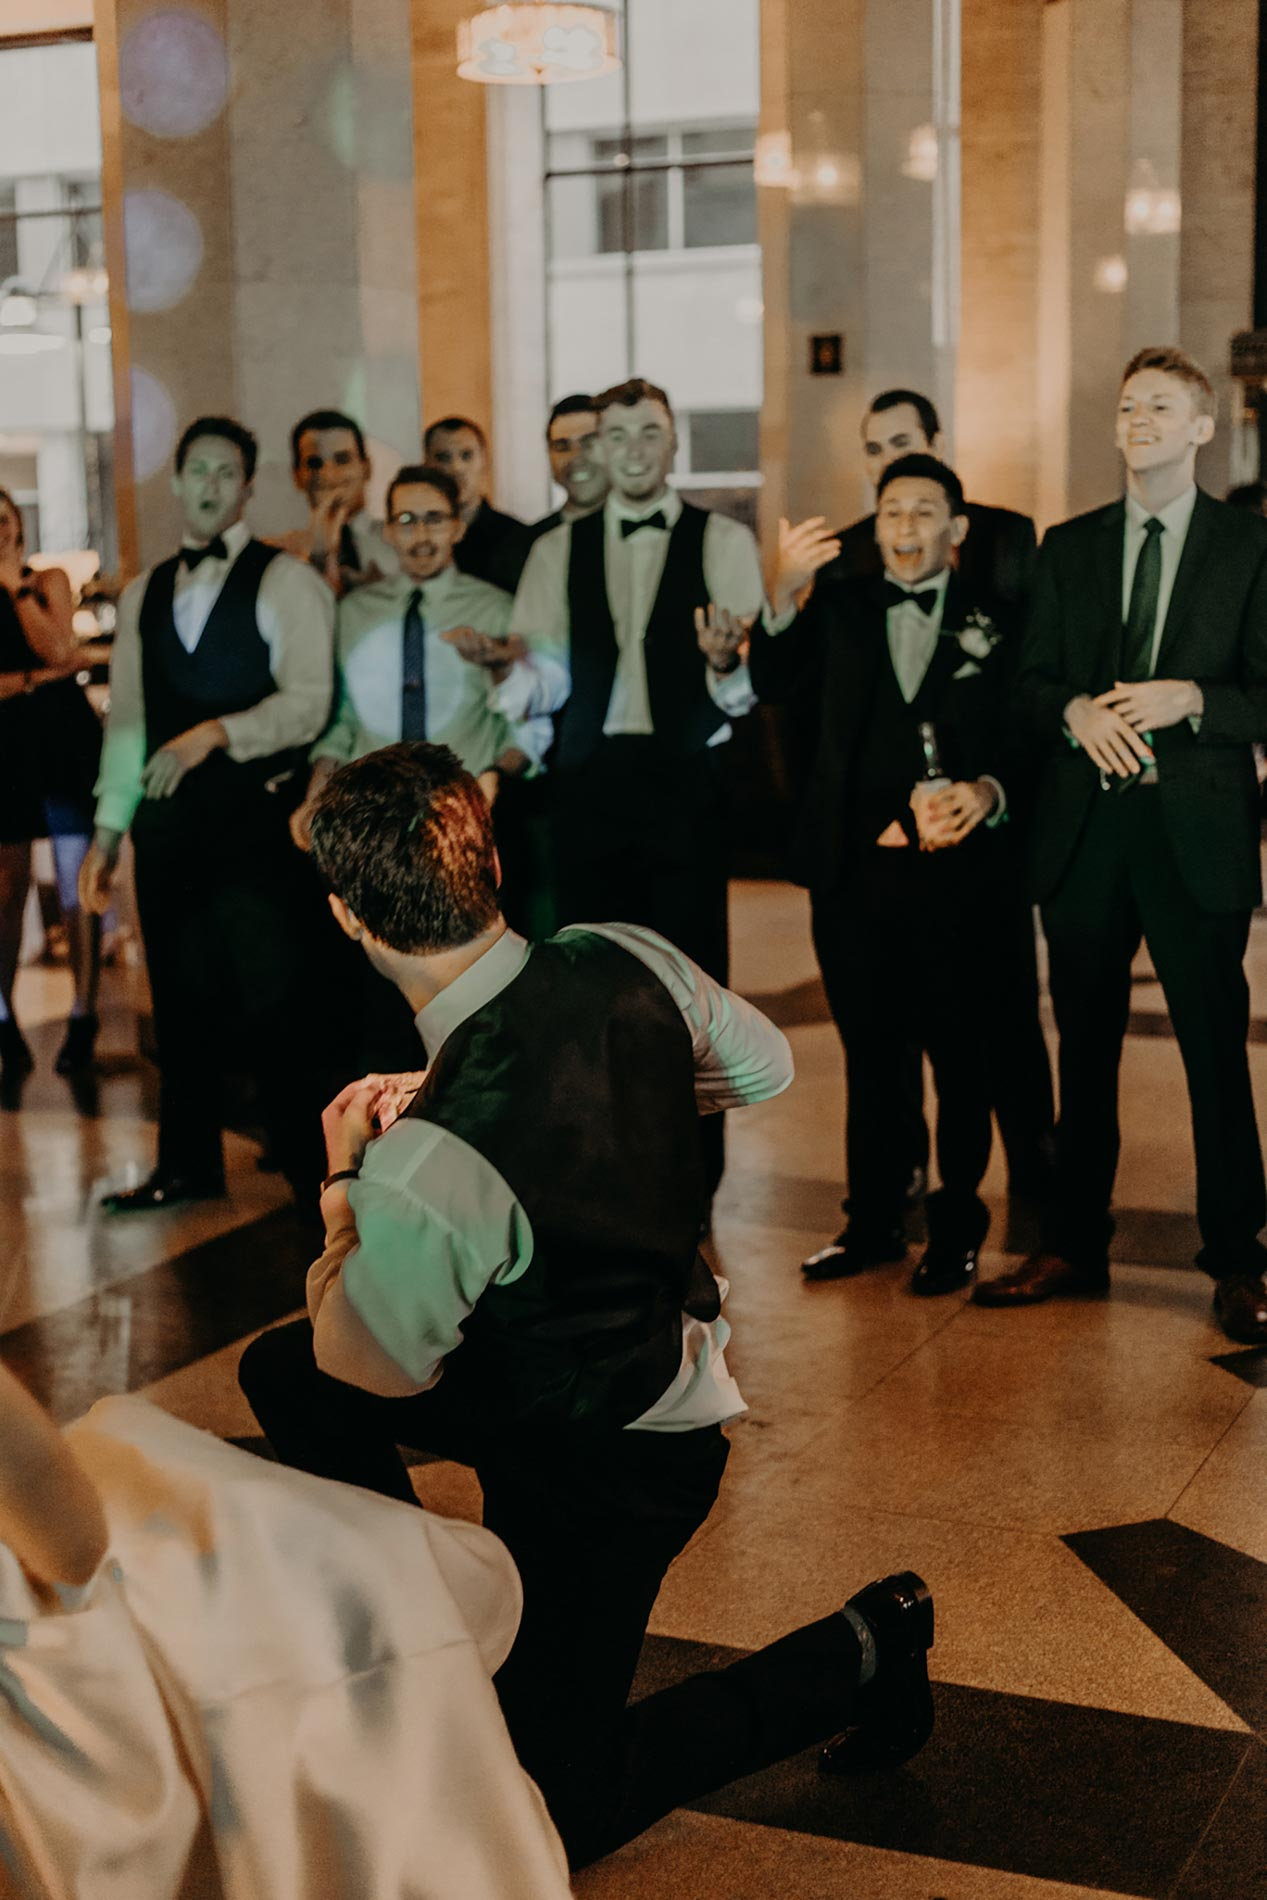 groom throwing the garter after wedding ceremony